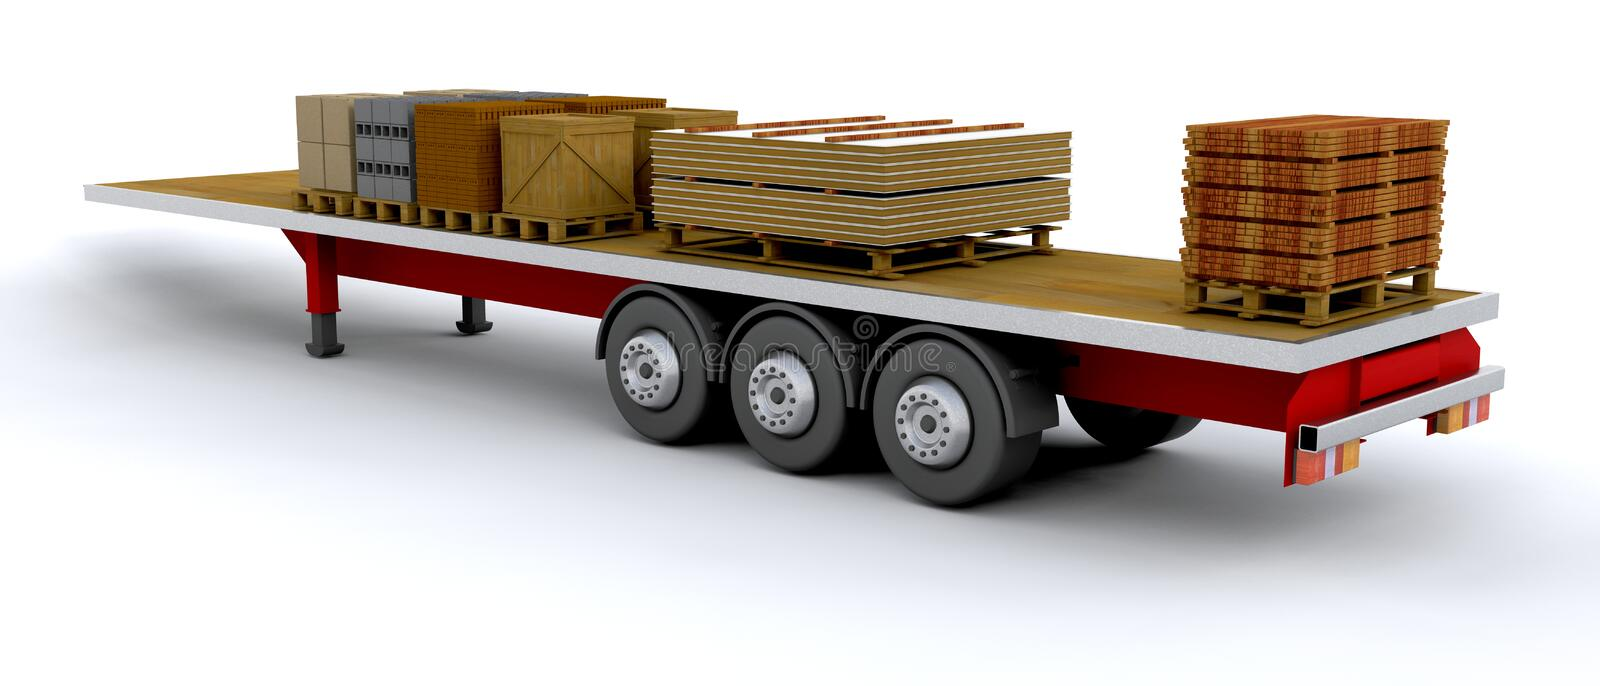 Download Heavy goods vehicle stock illustration. Image of object - 8056679